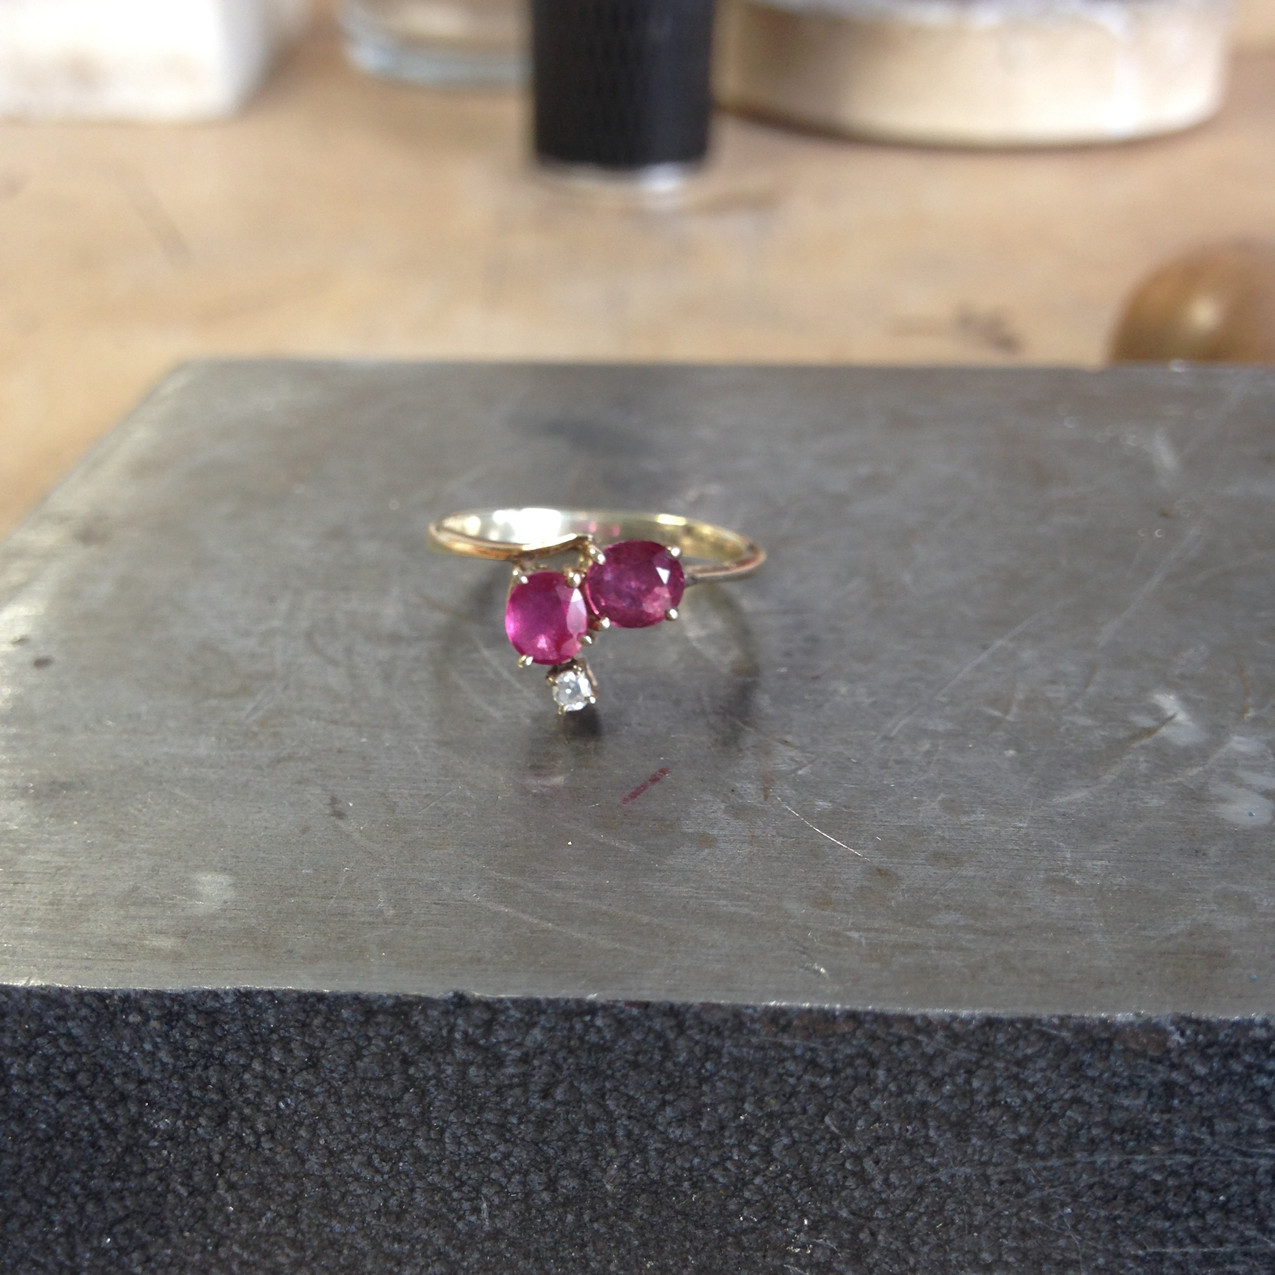 An antique 9ct gold and ruby diamond ring, ready for remodelling.